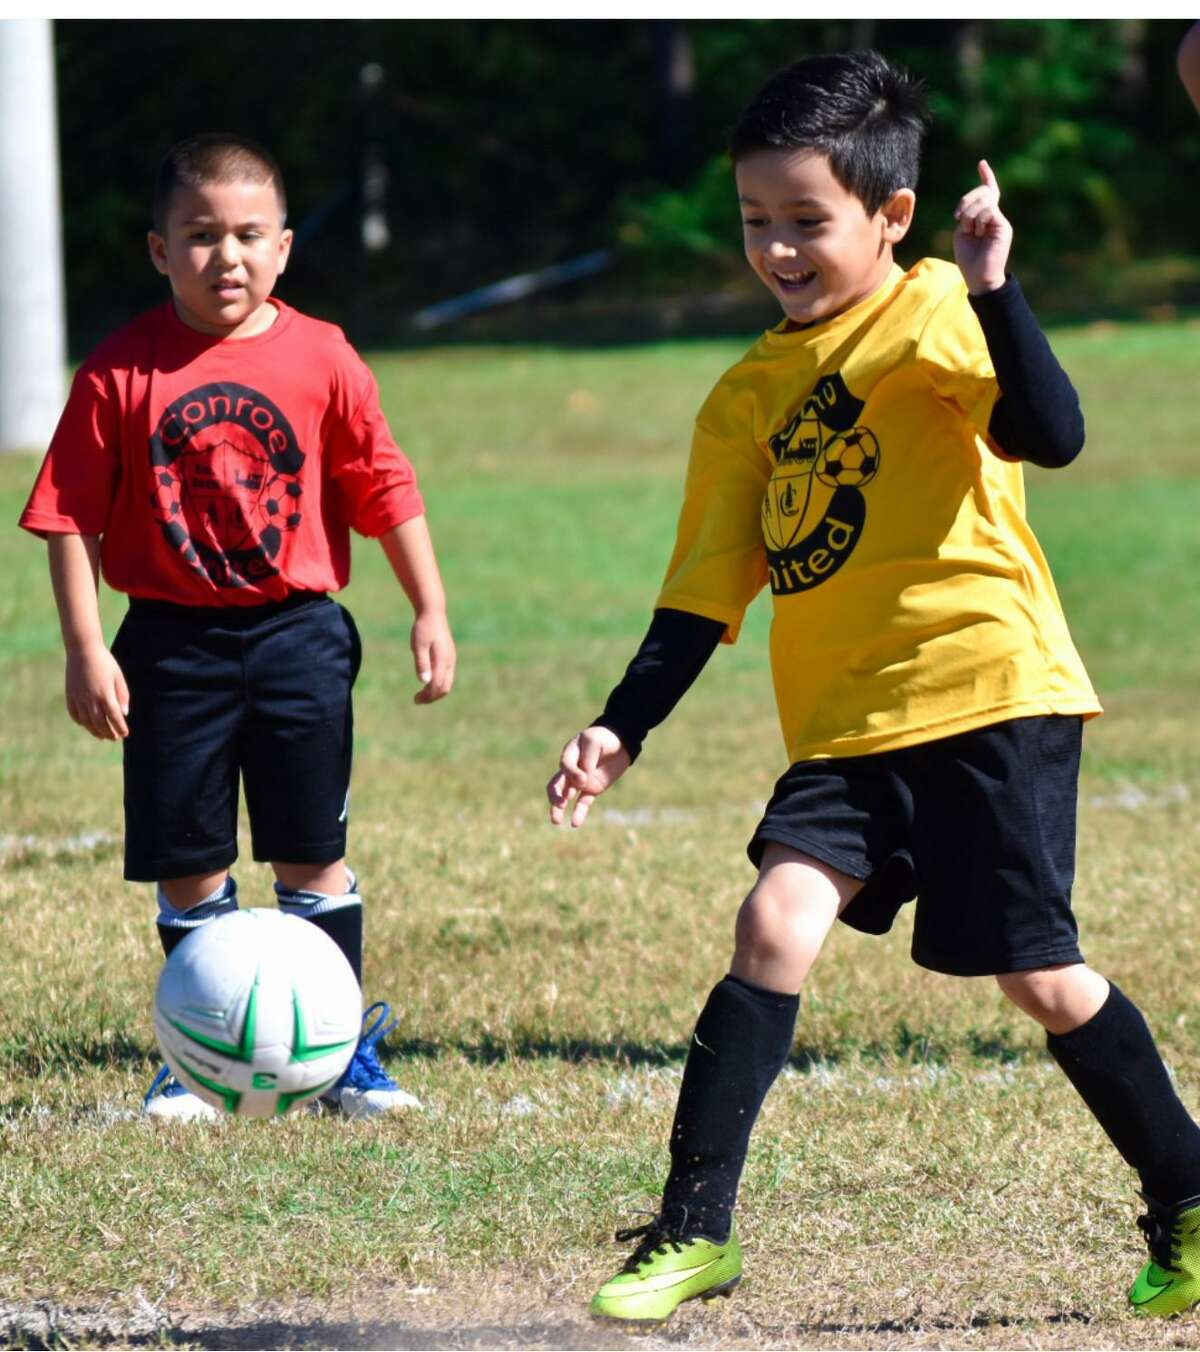 Register for Conroe United's Fall Soccer Season for boys and girls ages 4-13 is now taking place through Aug. 6.